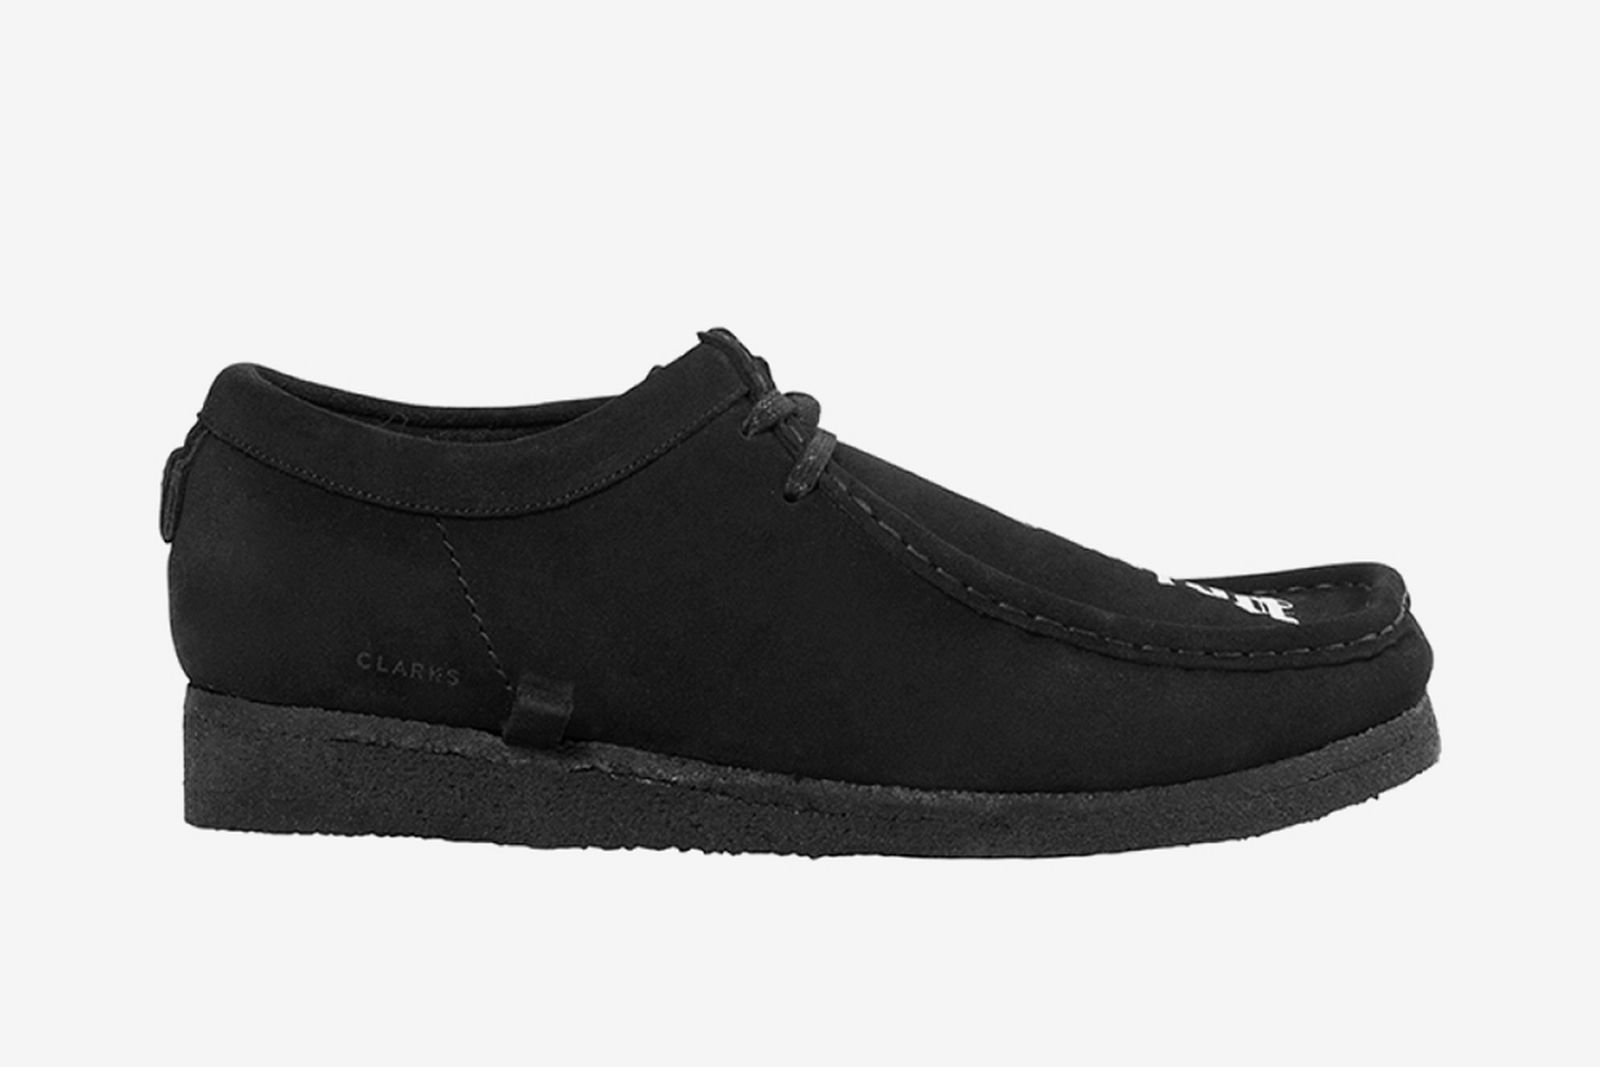 palm-angels-clarks-wallabee-release-date-price-1-02